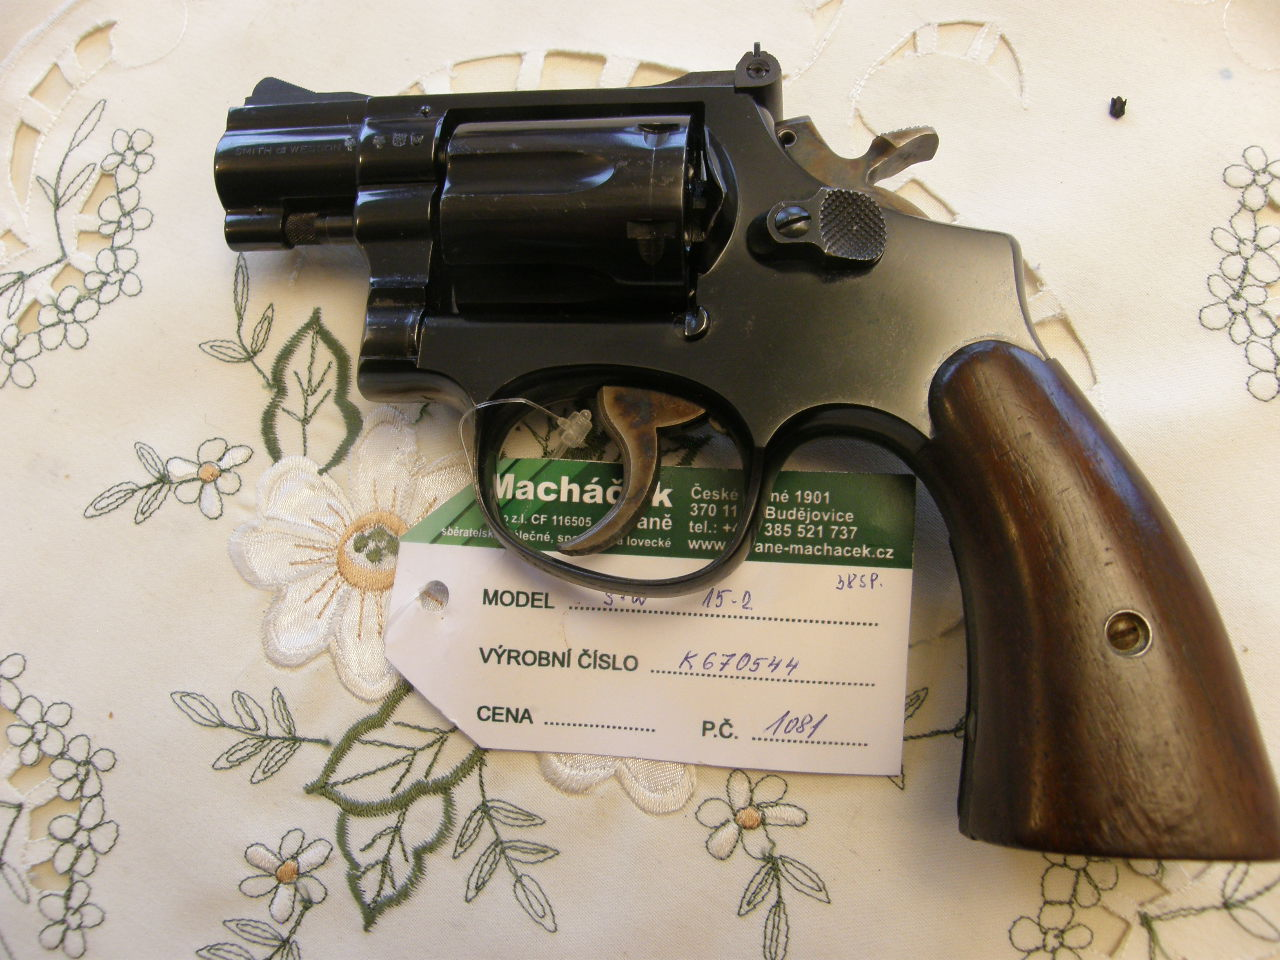 Smith Wesson Mod. 15 v.č.K670544 r.38 Sp.